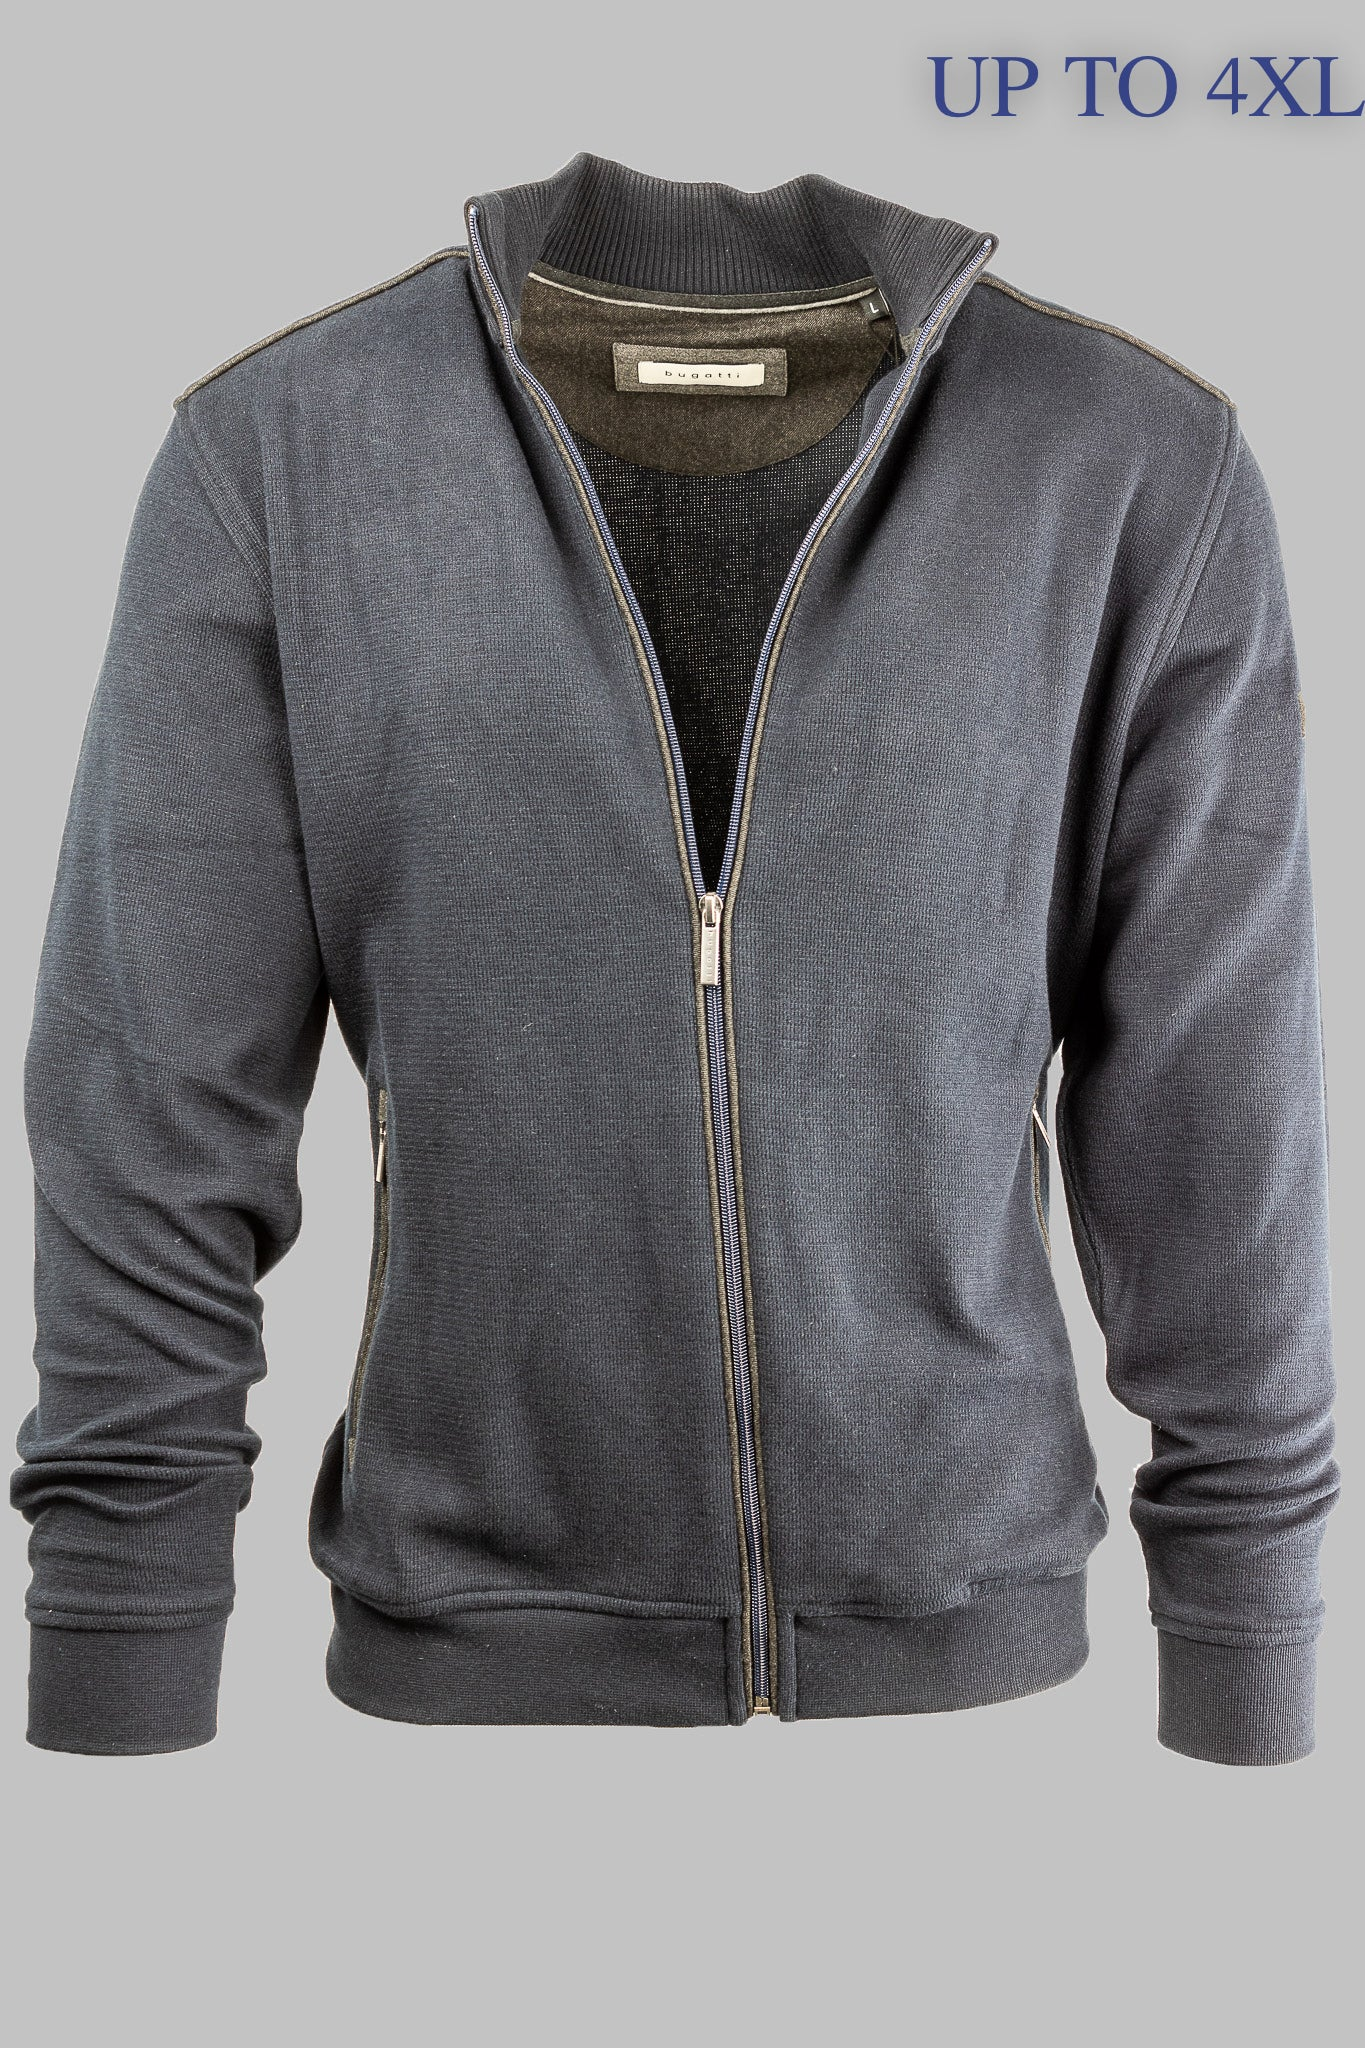 8700 65050 390 Bugatti Men's Navy Cardigan for sale online ireland